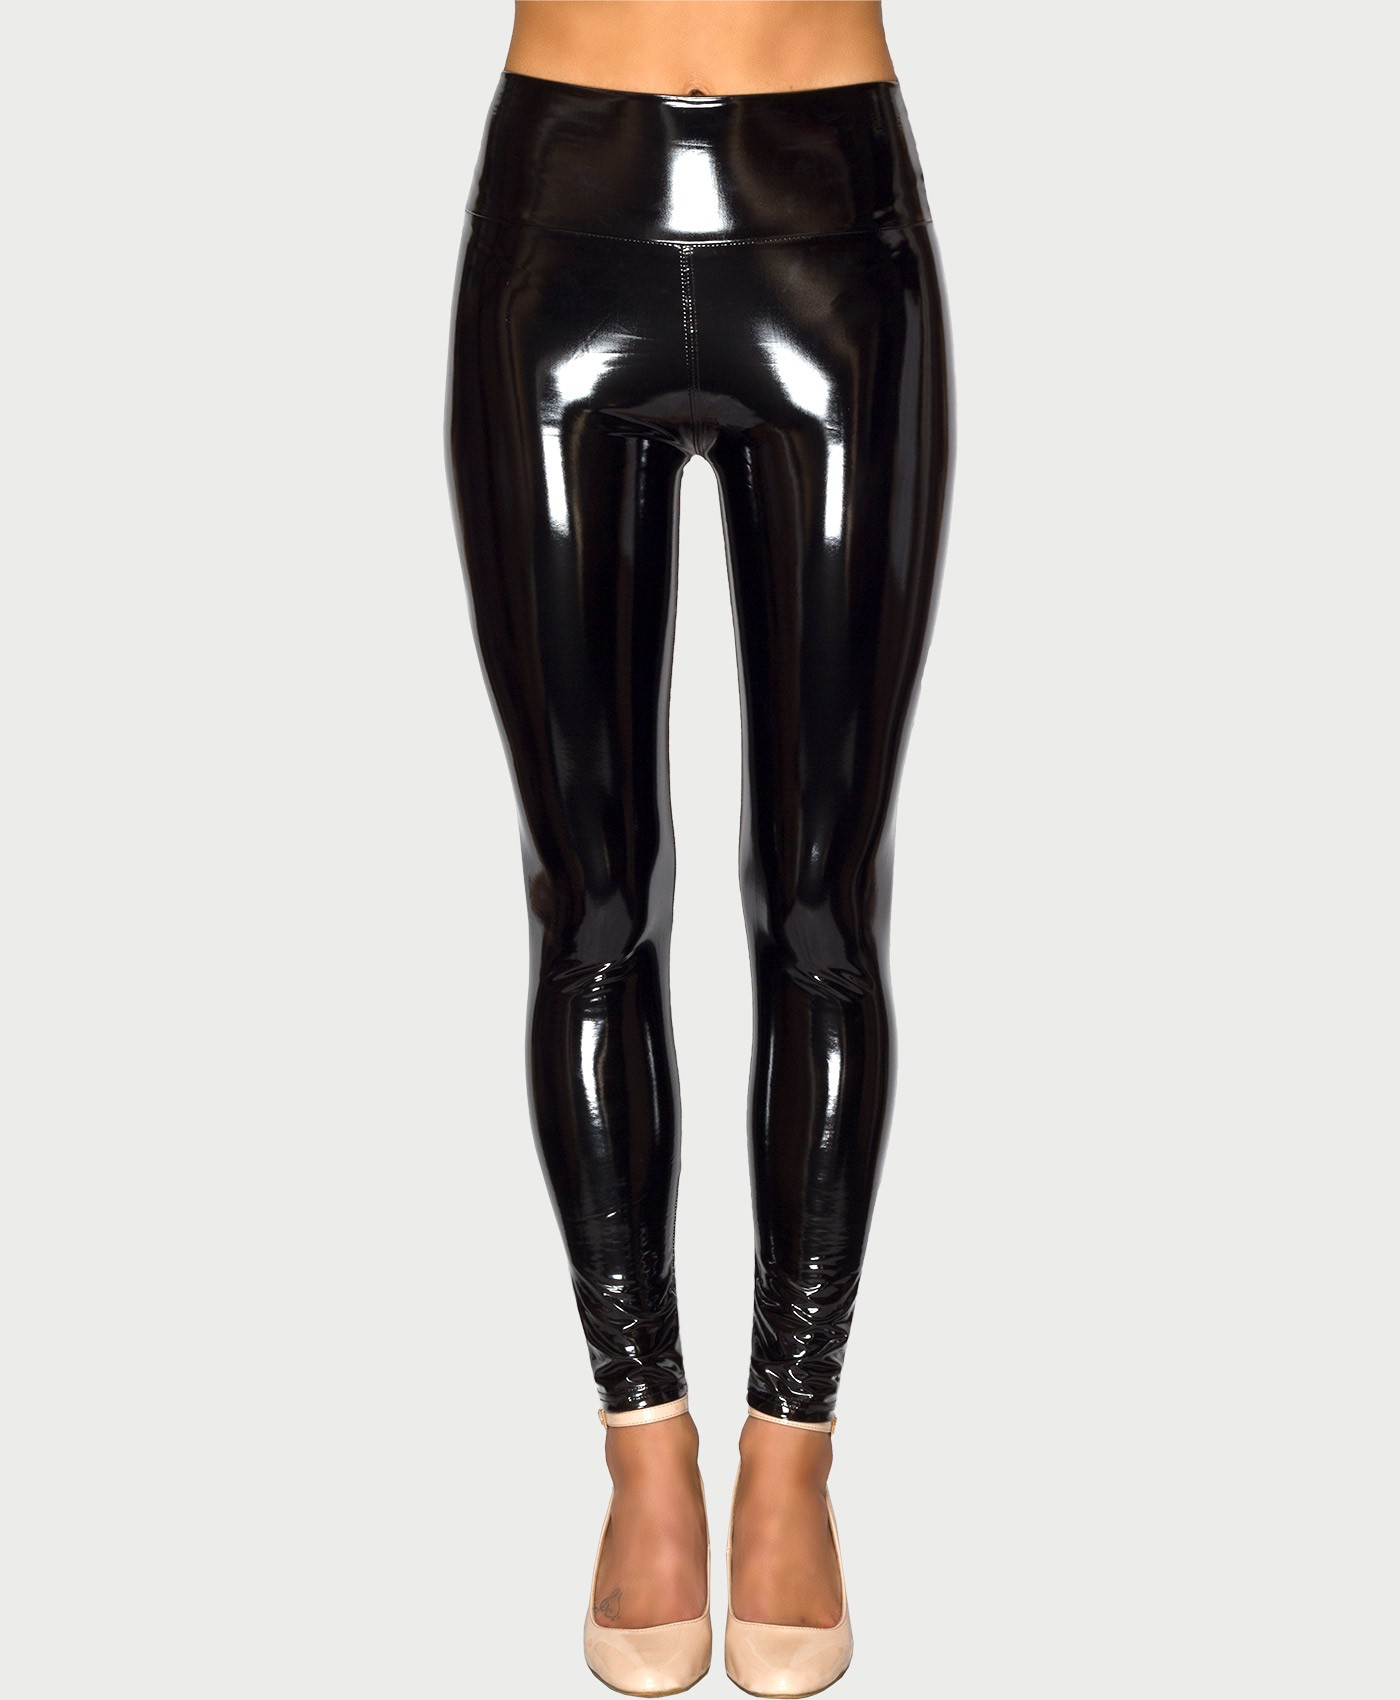 Wet Look High Shine Vinyl Leggings